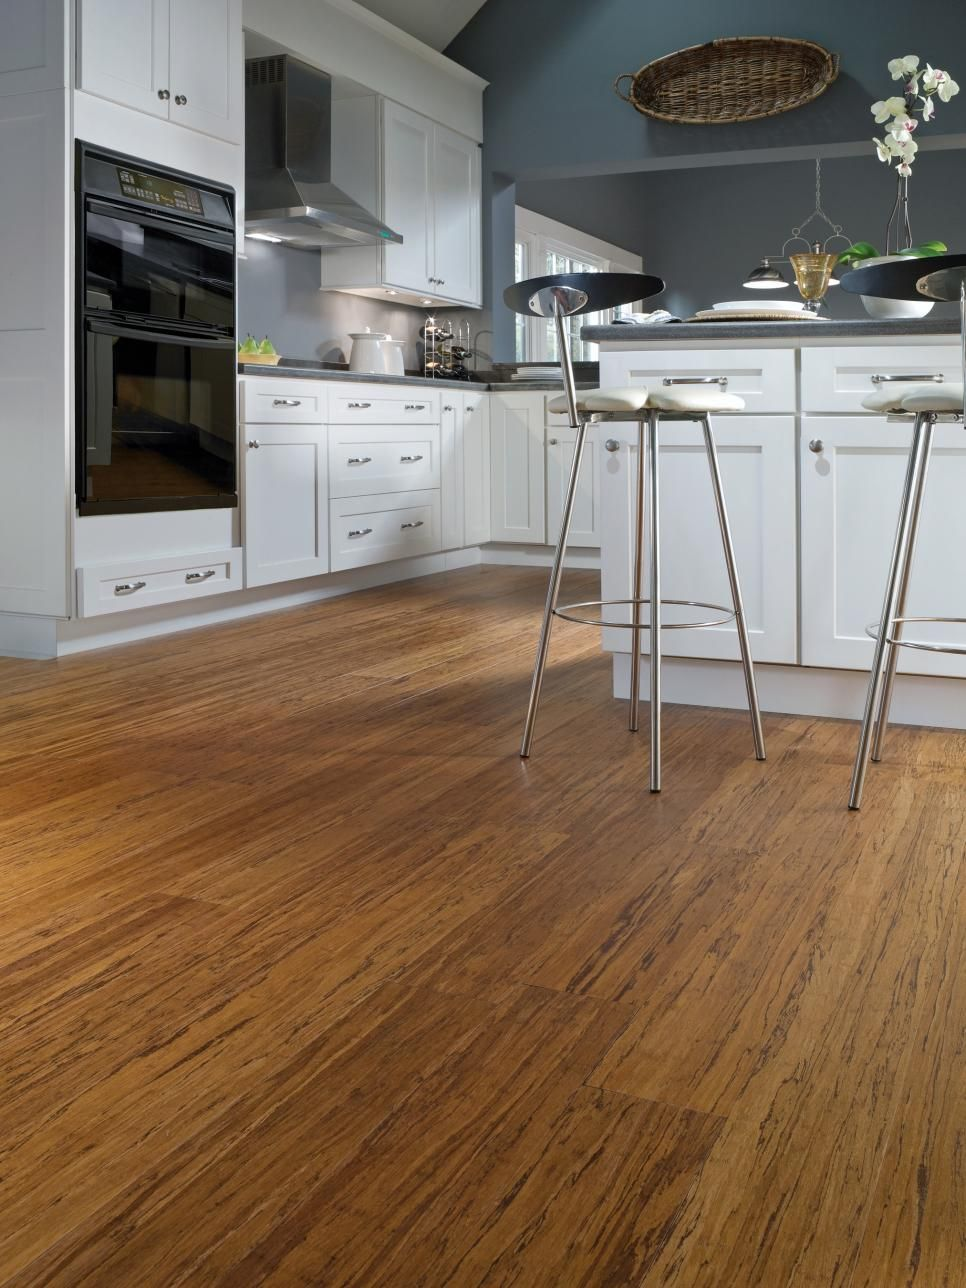 These Hot Ideas In Kitchen Flooring Are Great For Cooking Up A Fabulous Kitchen Design Kitchen Flooring Beautiful Kitchens Kitchen Floor Tile